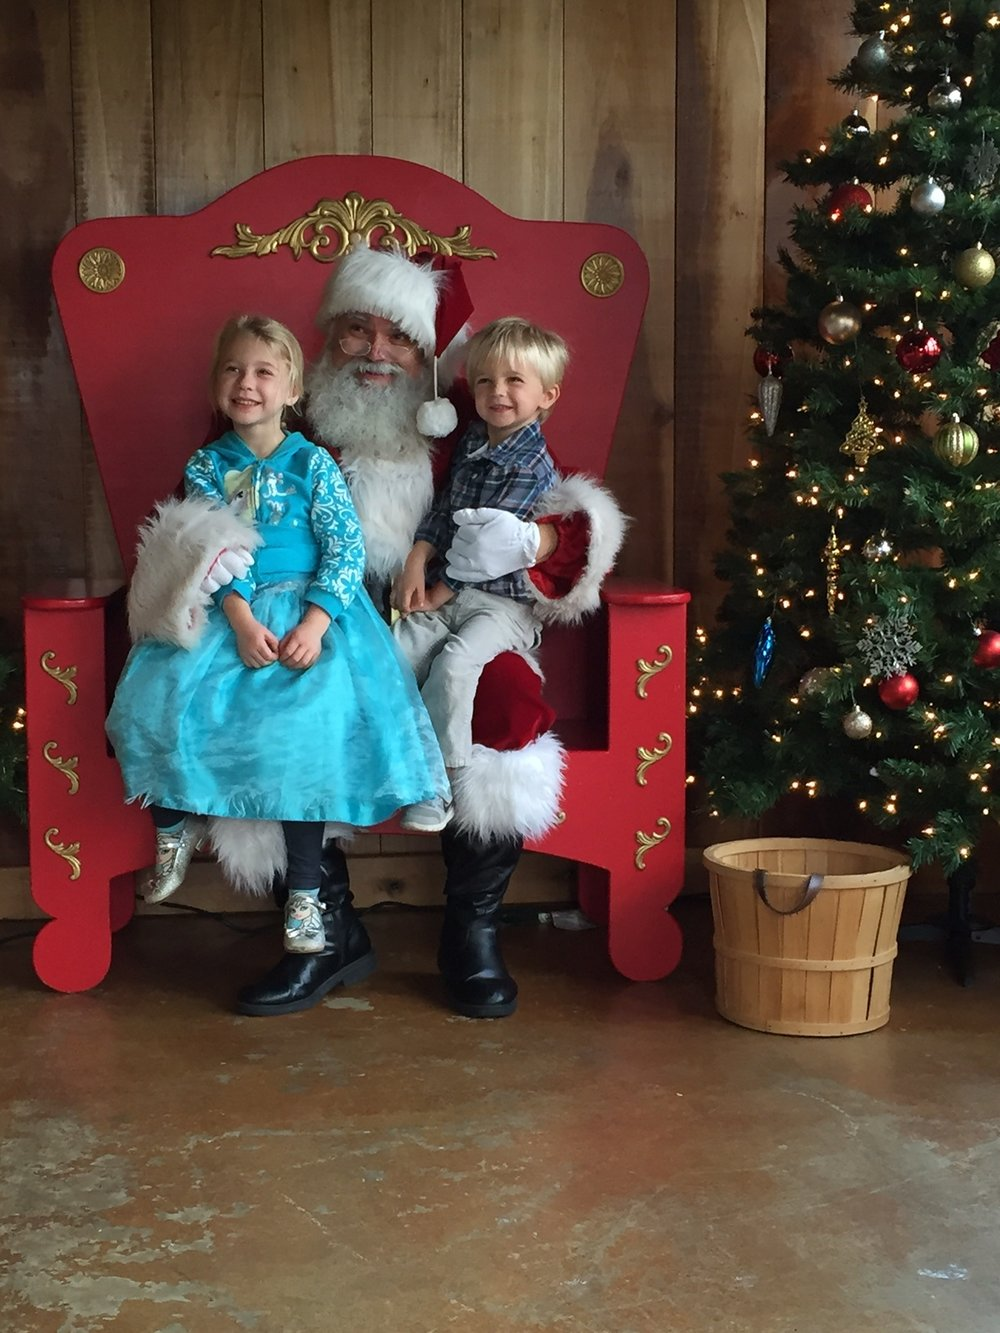 Meet Santa at Adventure Park USA!